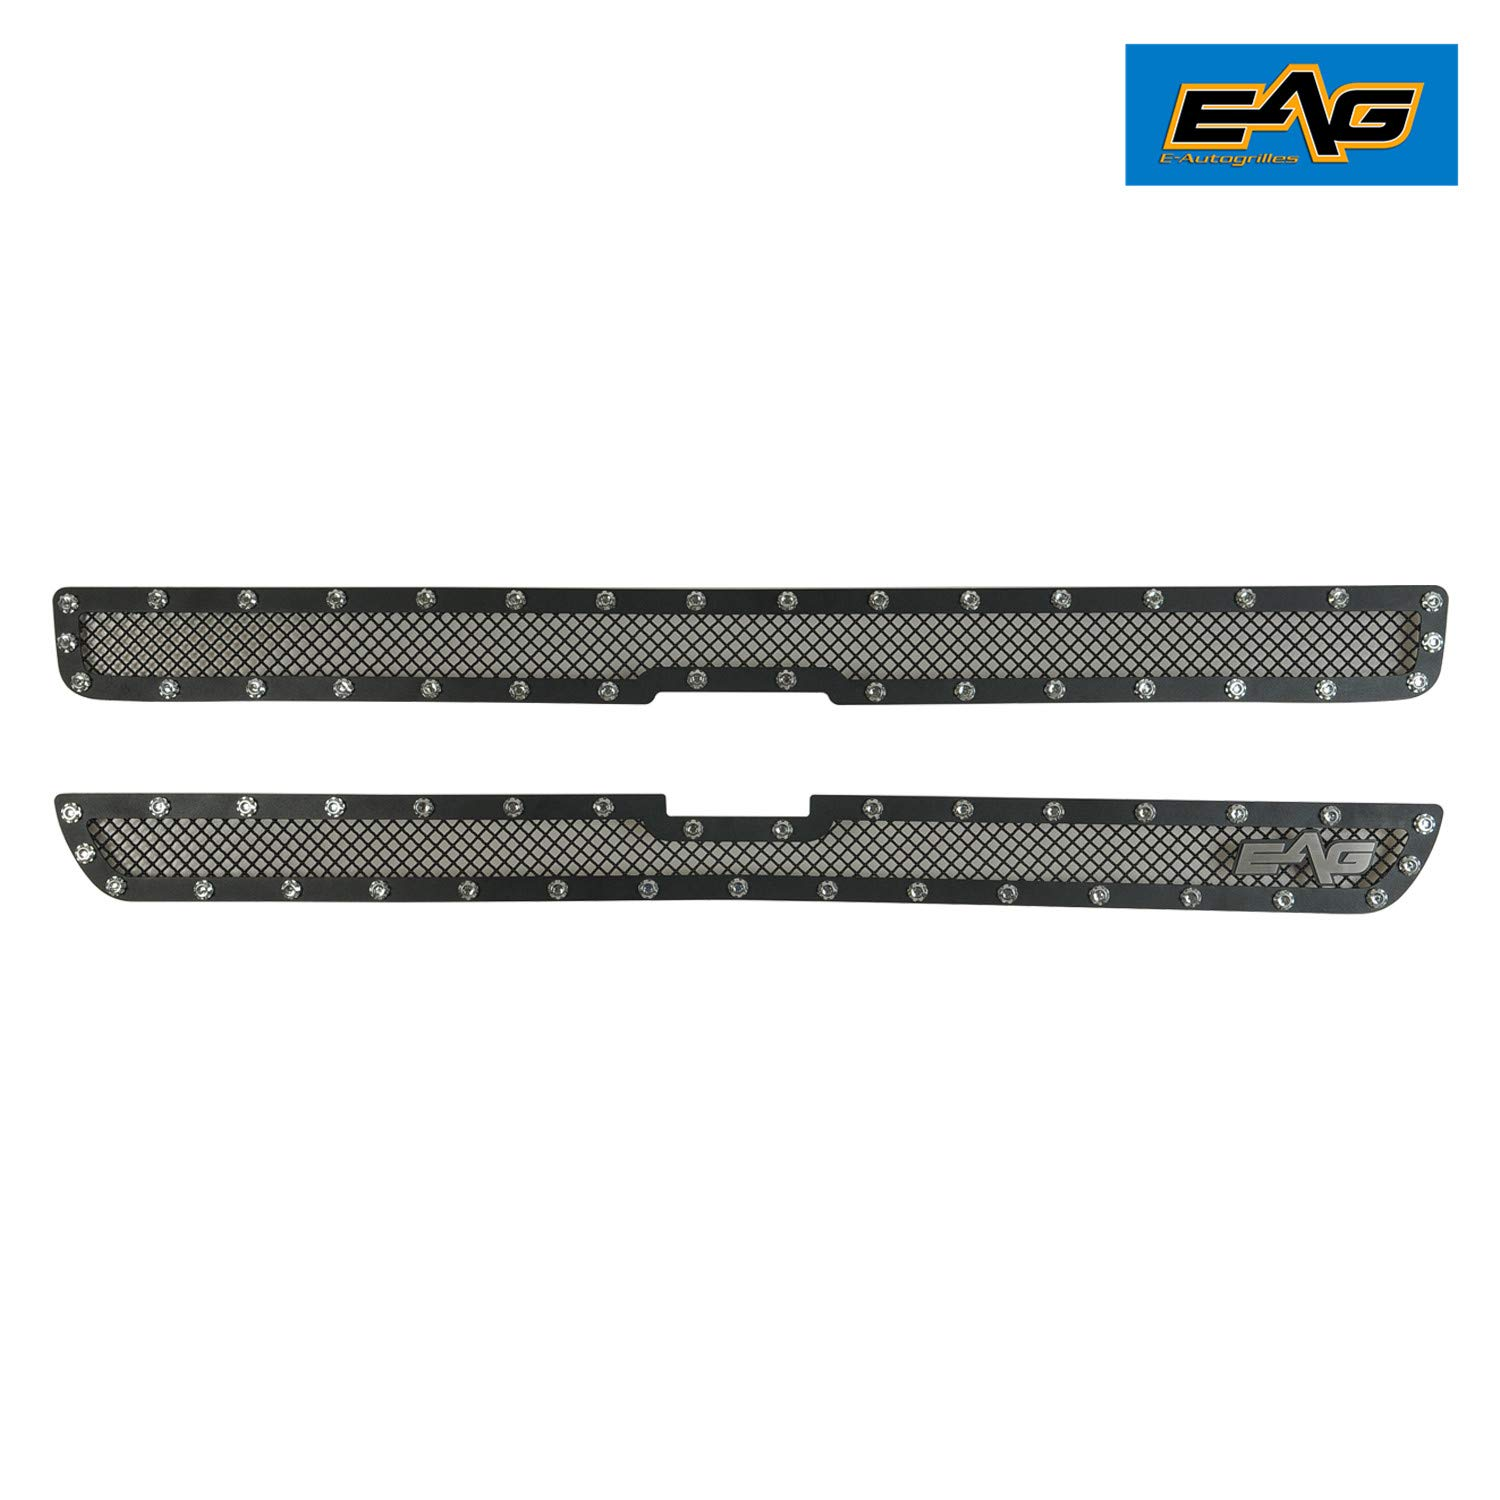 Grilles EAG Rivet Stainless Steel Wire Mesh Grille for 99-02 Chevy ...